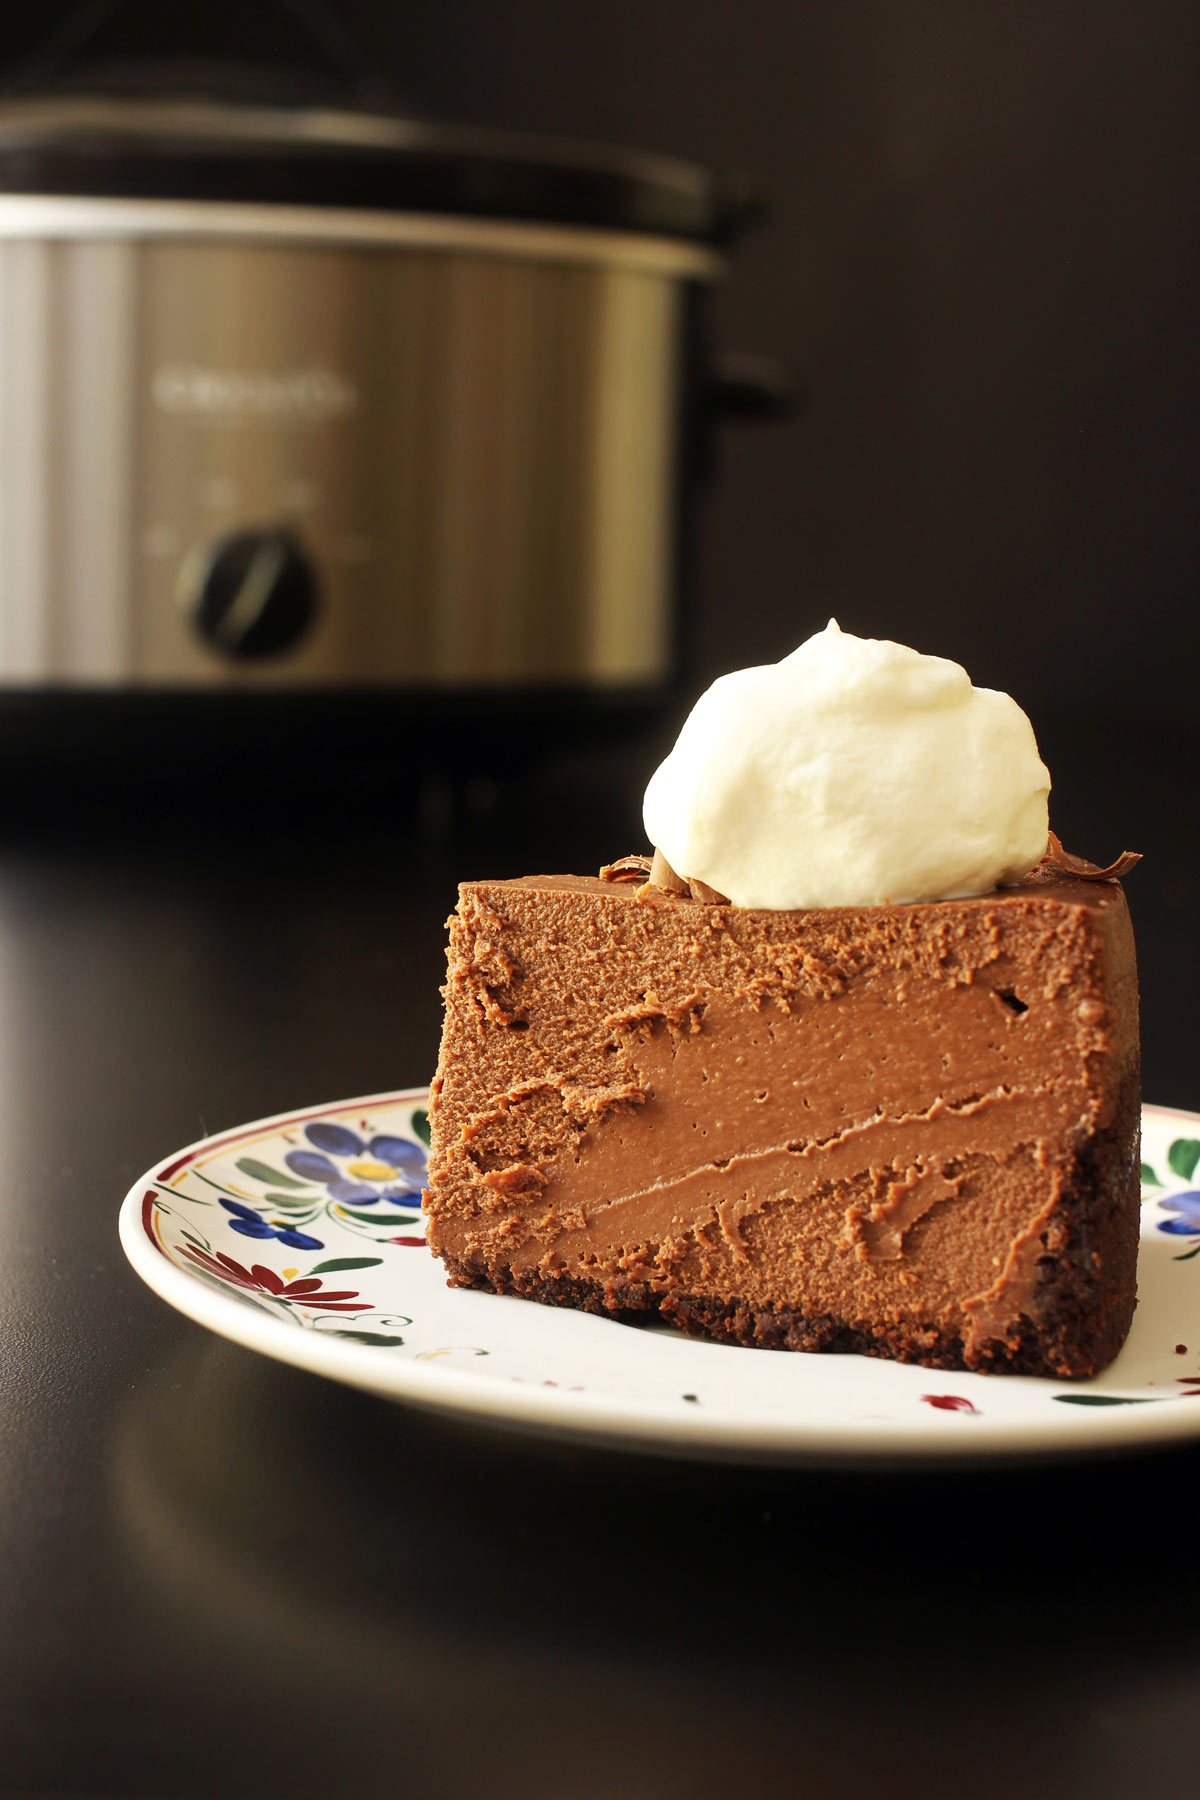 slice of cheesecake on plate in front of slow cooker.